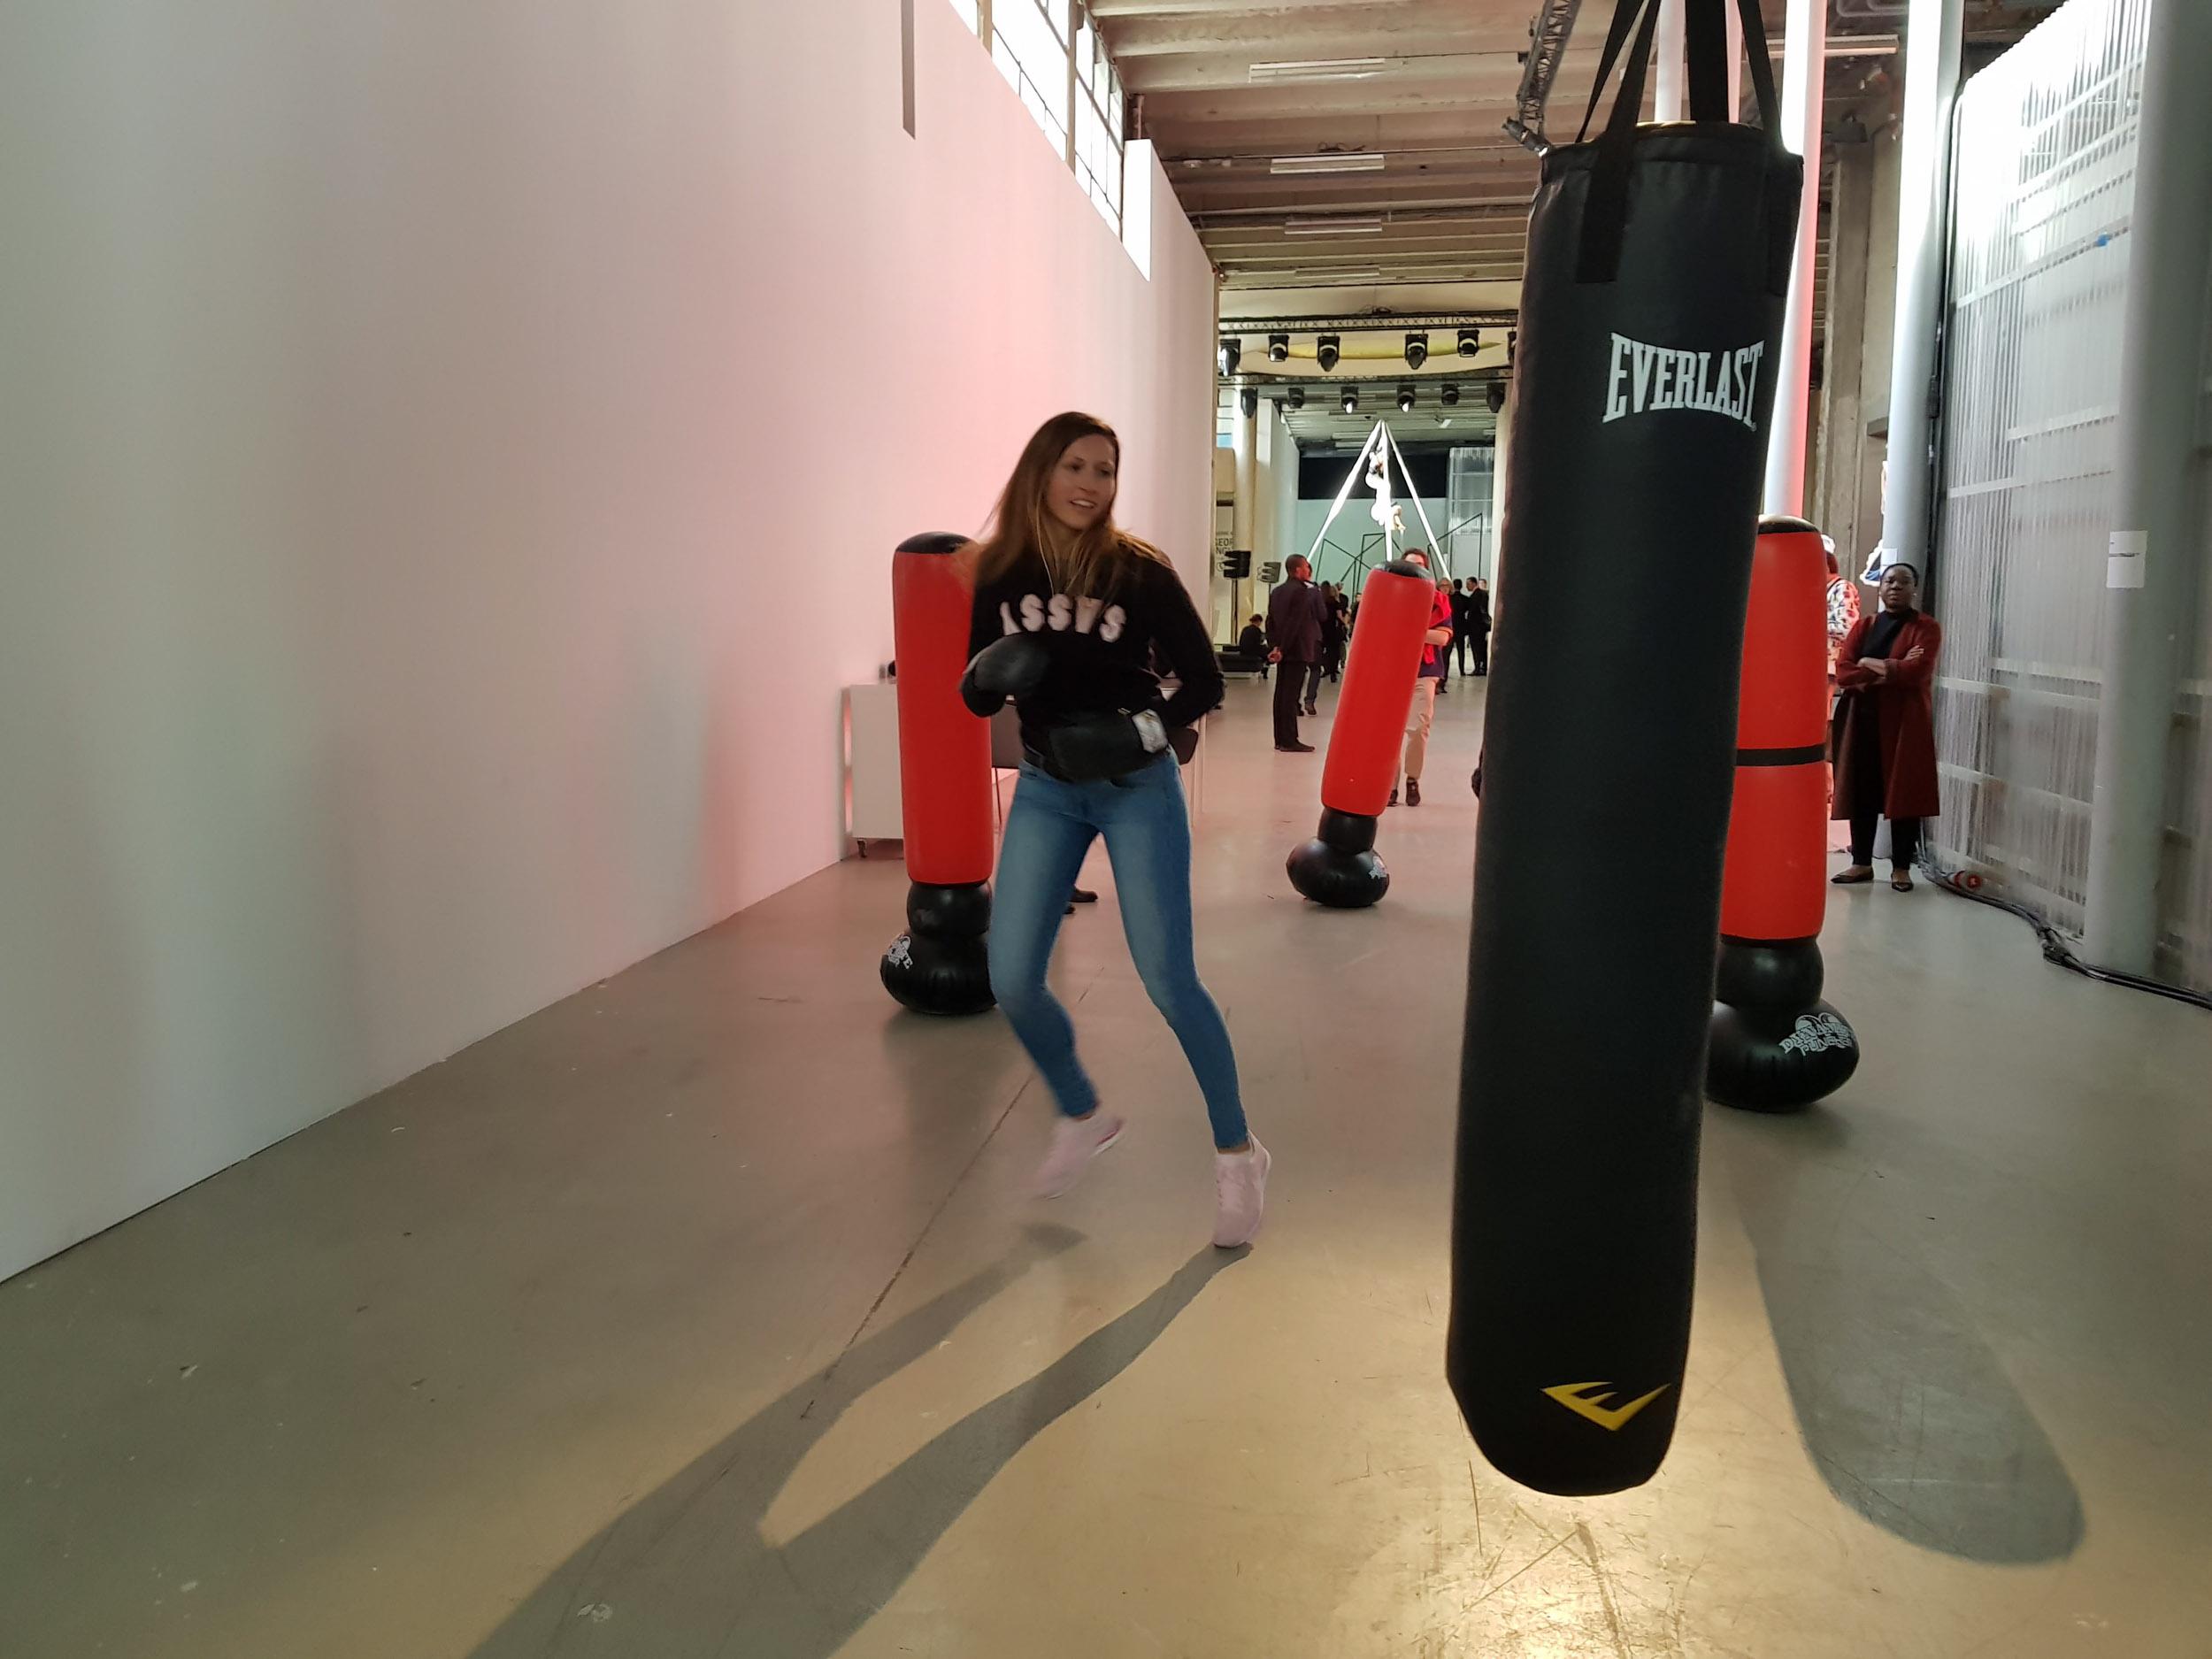 Female athletes of MMA (Mixed Martial Arts, a hybrid combat sport also known as «free-fight» or «ultimate fighting») perform free-fight movements on the punching bags.  The role-playing rule of the installation is that only women are allowed to physically interact with it: they can borrow gloves, touch/hit the punching bags, or use the markers to write on them.  The behavior and interactions of the visitors creates something between a social psychology experiment and a non-linear play.